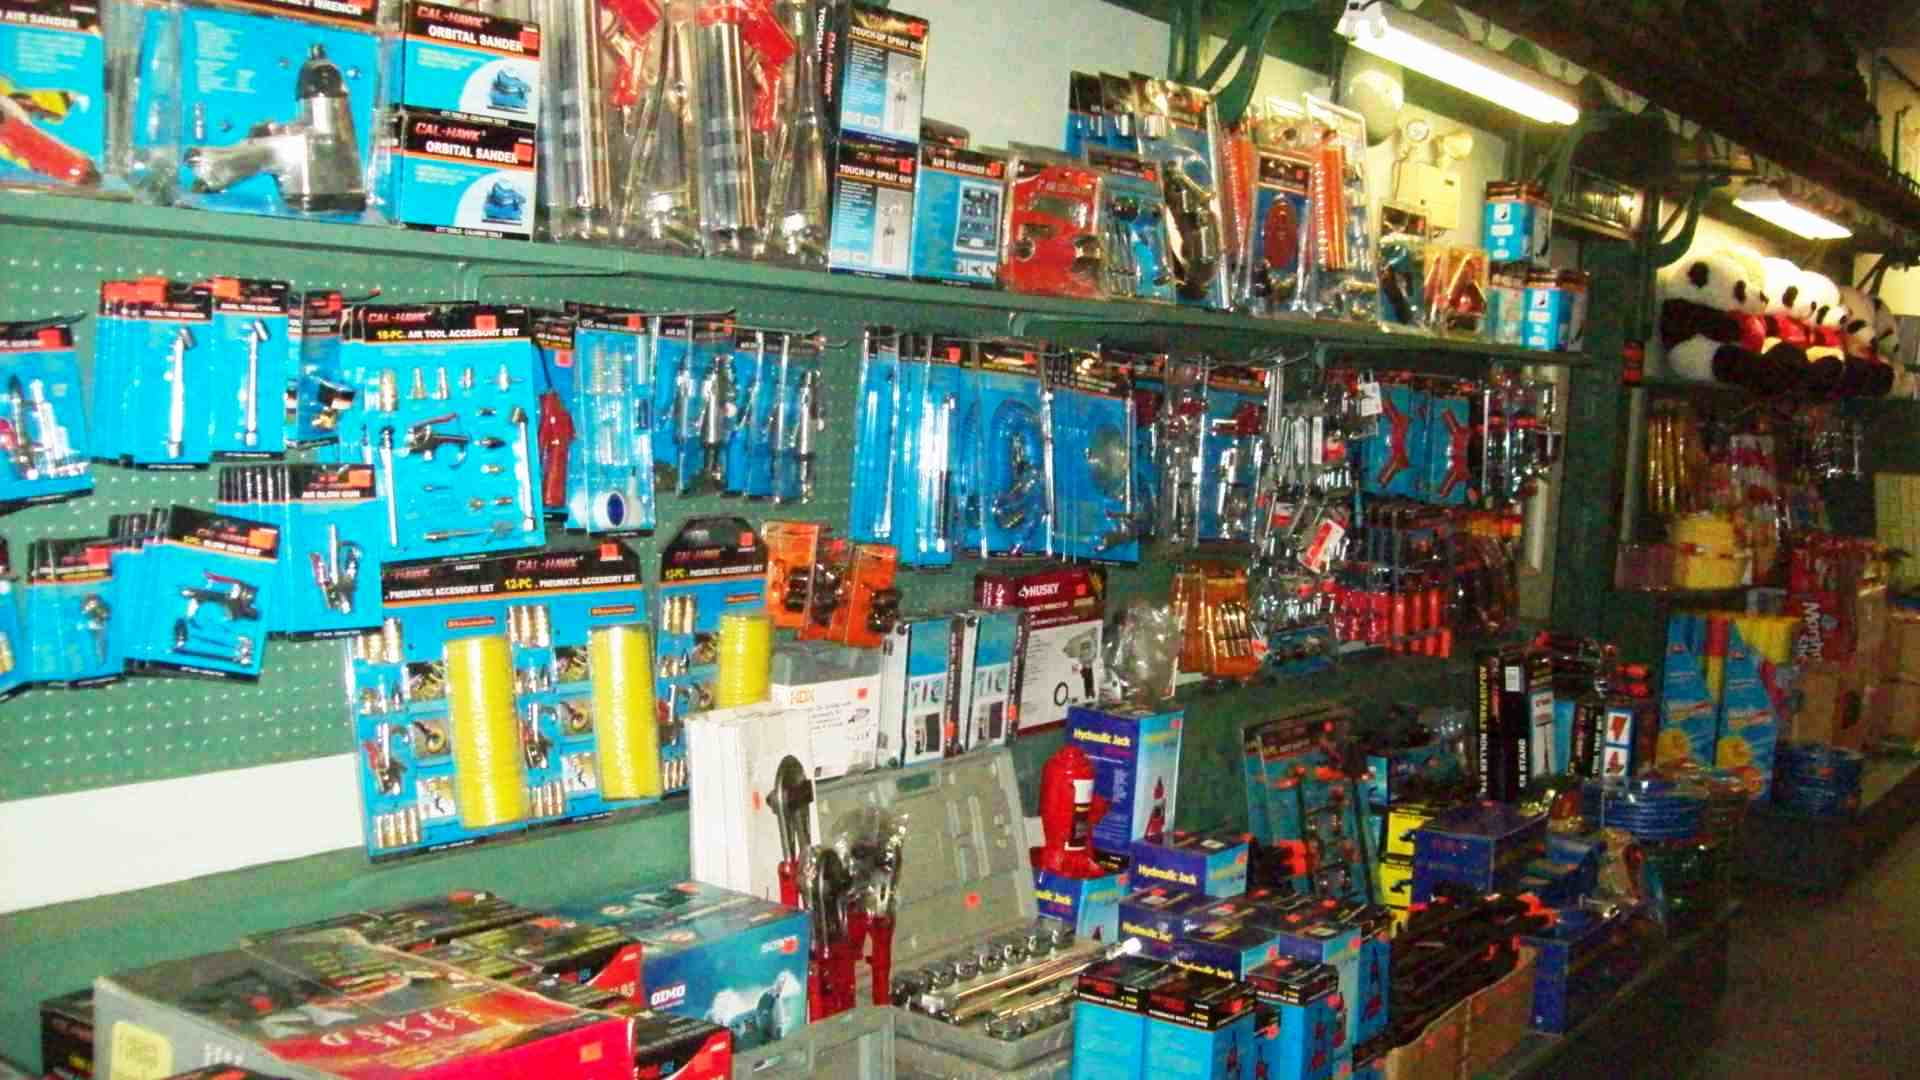 Vast Selections of tools and household supplies